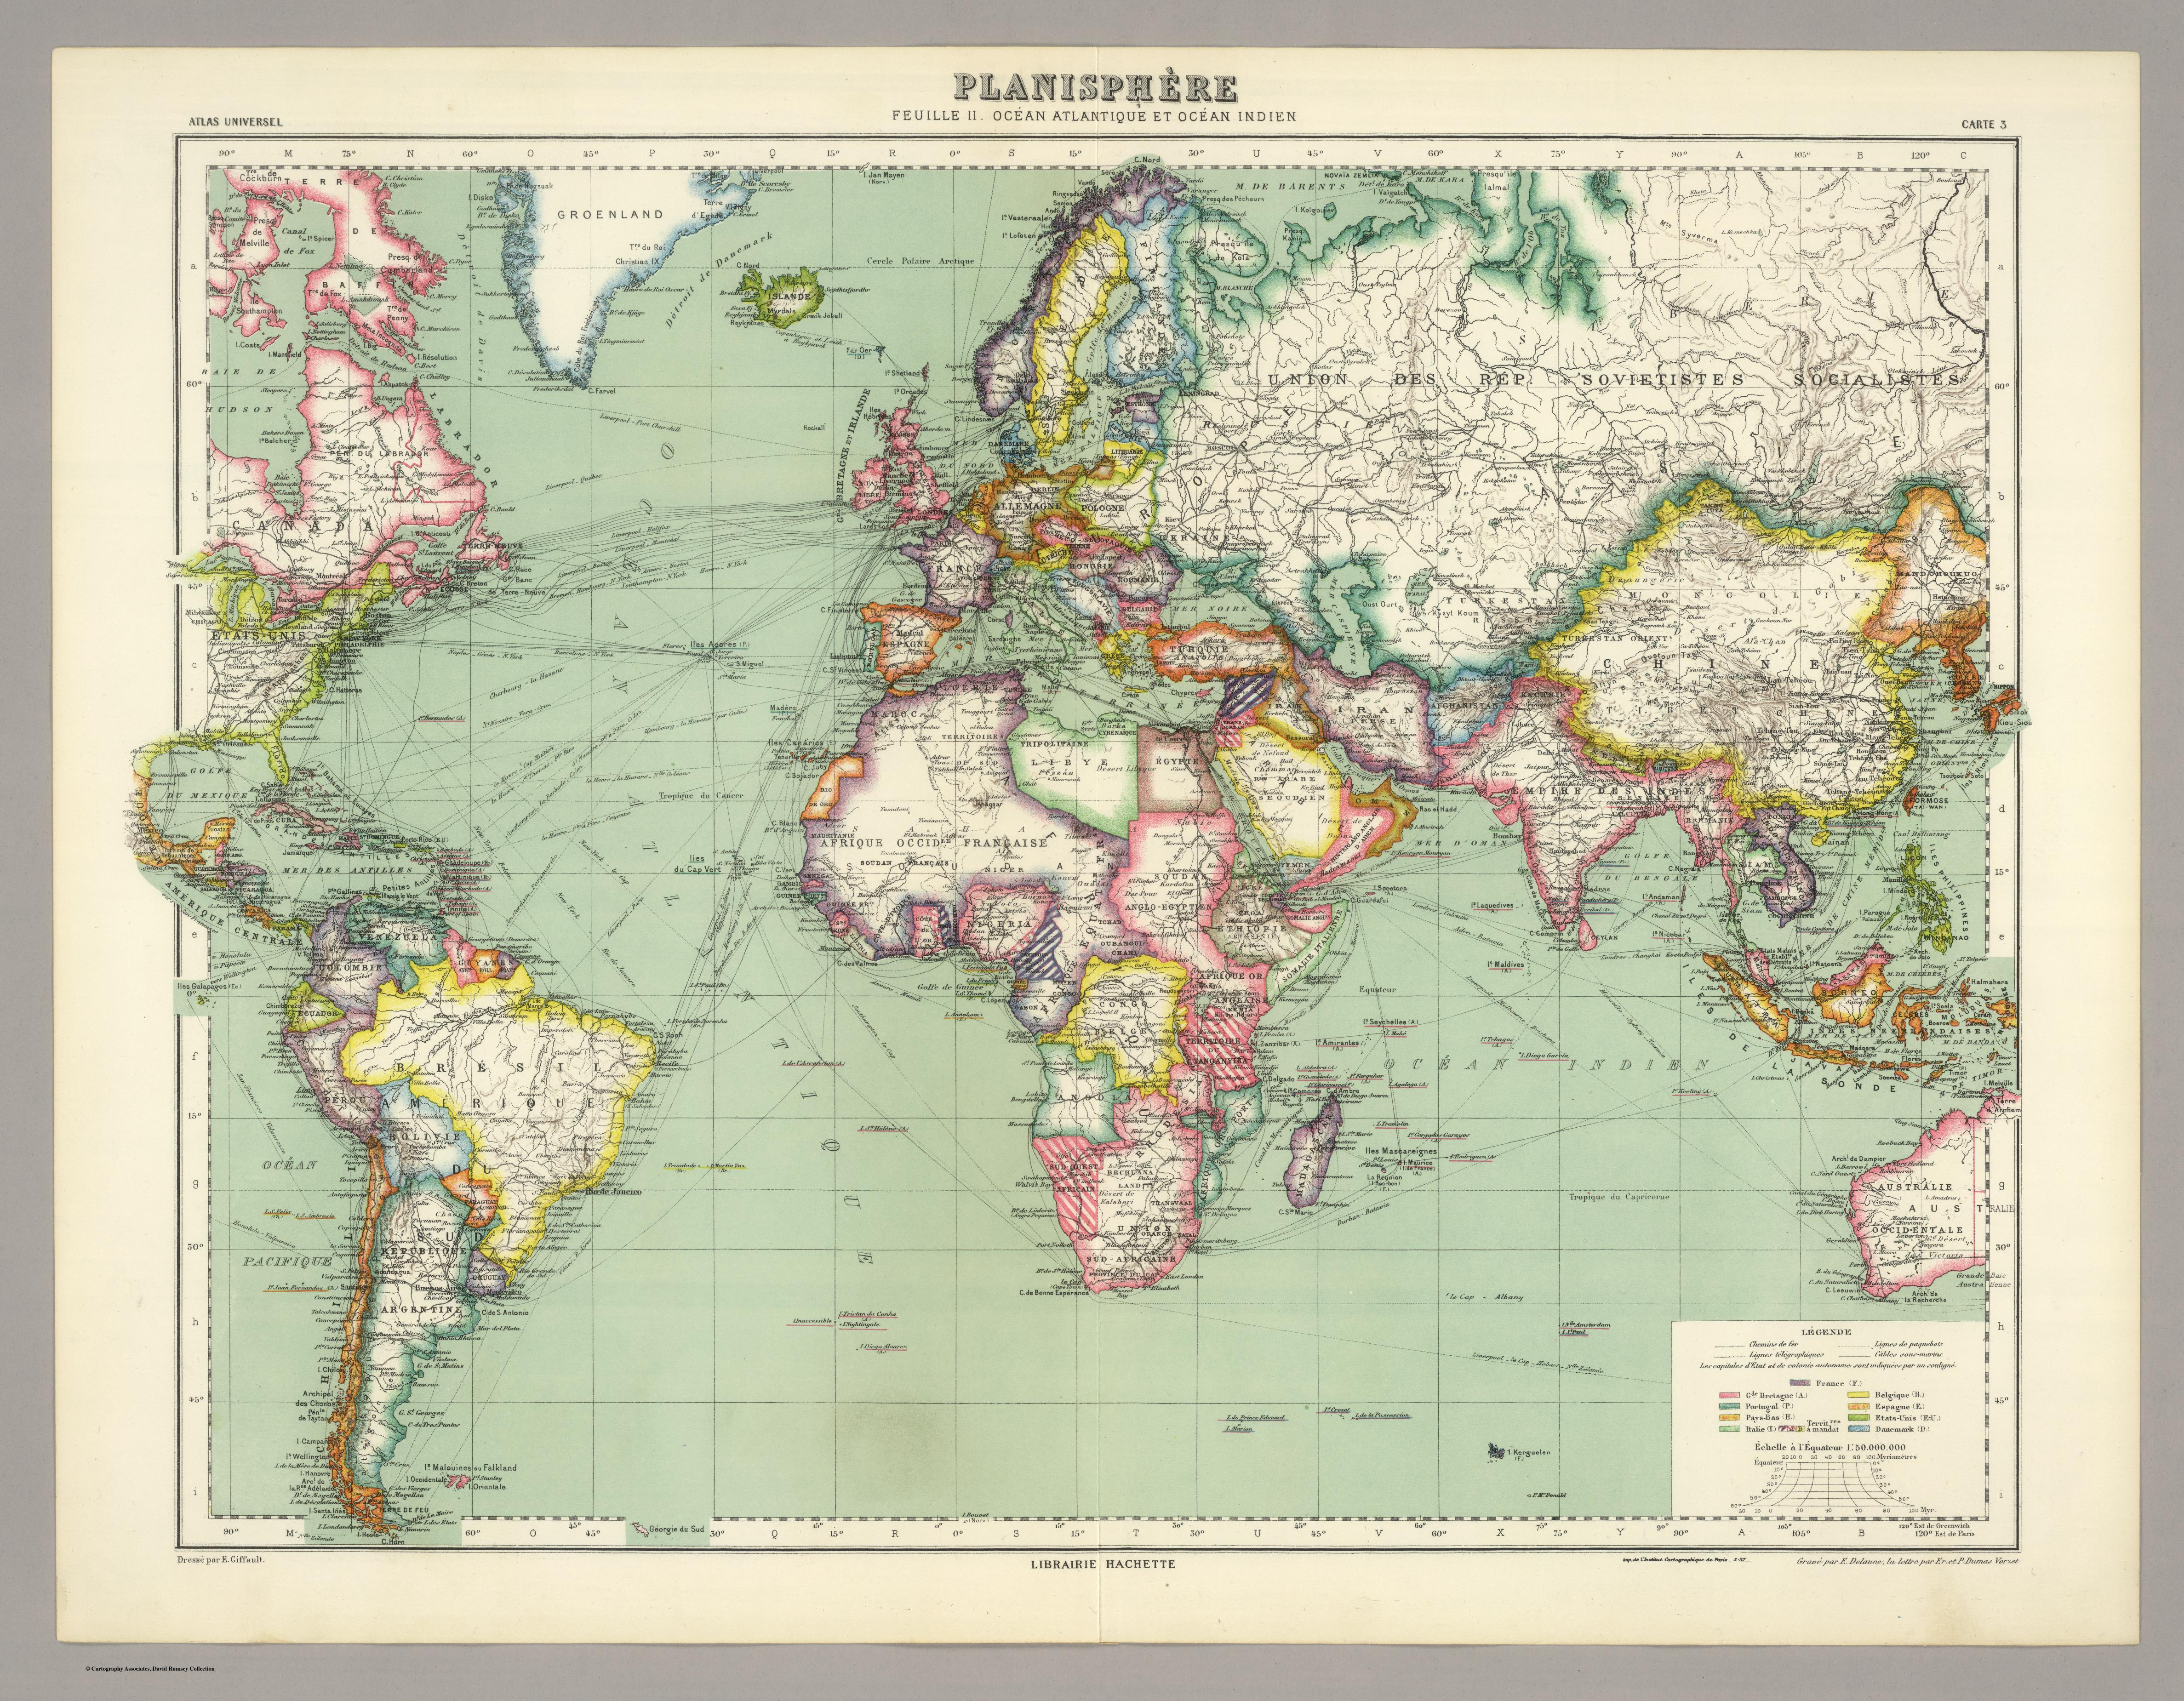 Atlastory mapping the history of the world futureblind imagine students in a classroom learning about world war ii youd be able to see the country borders of europe as they existed in 1942 gumiabroncs Image collections